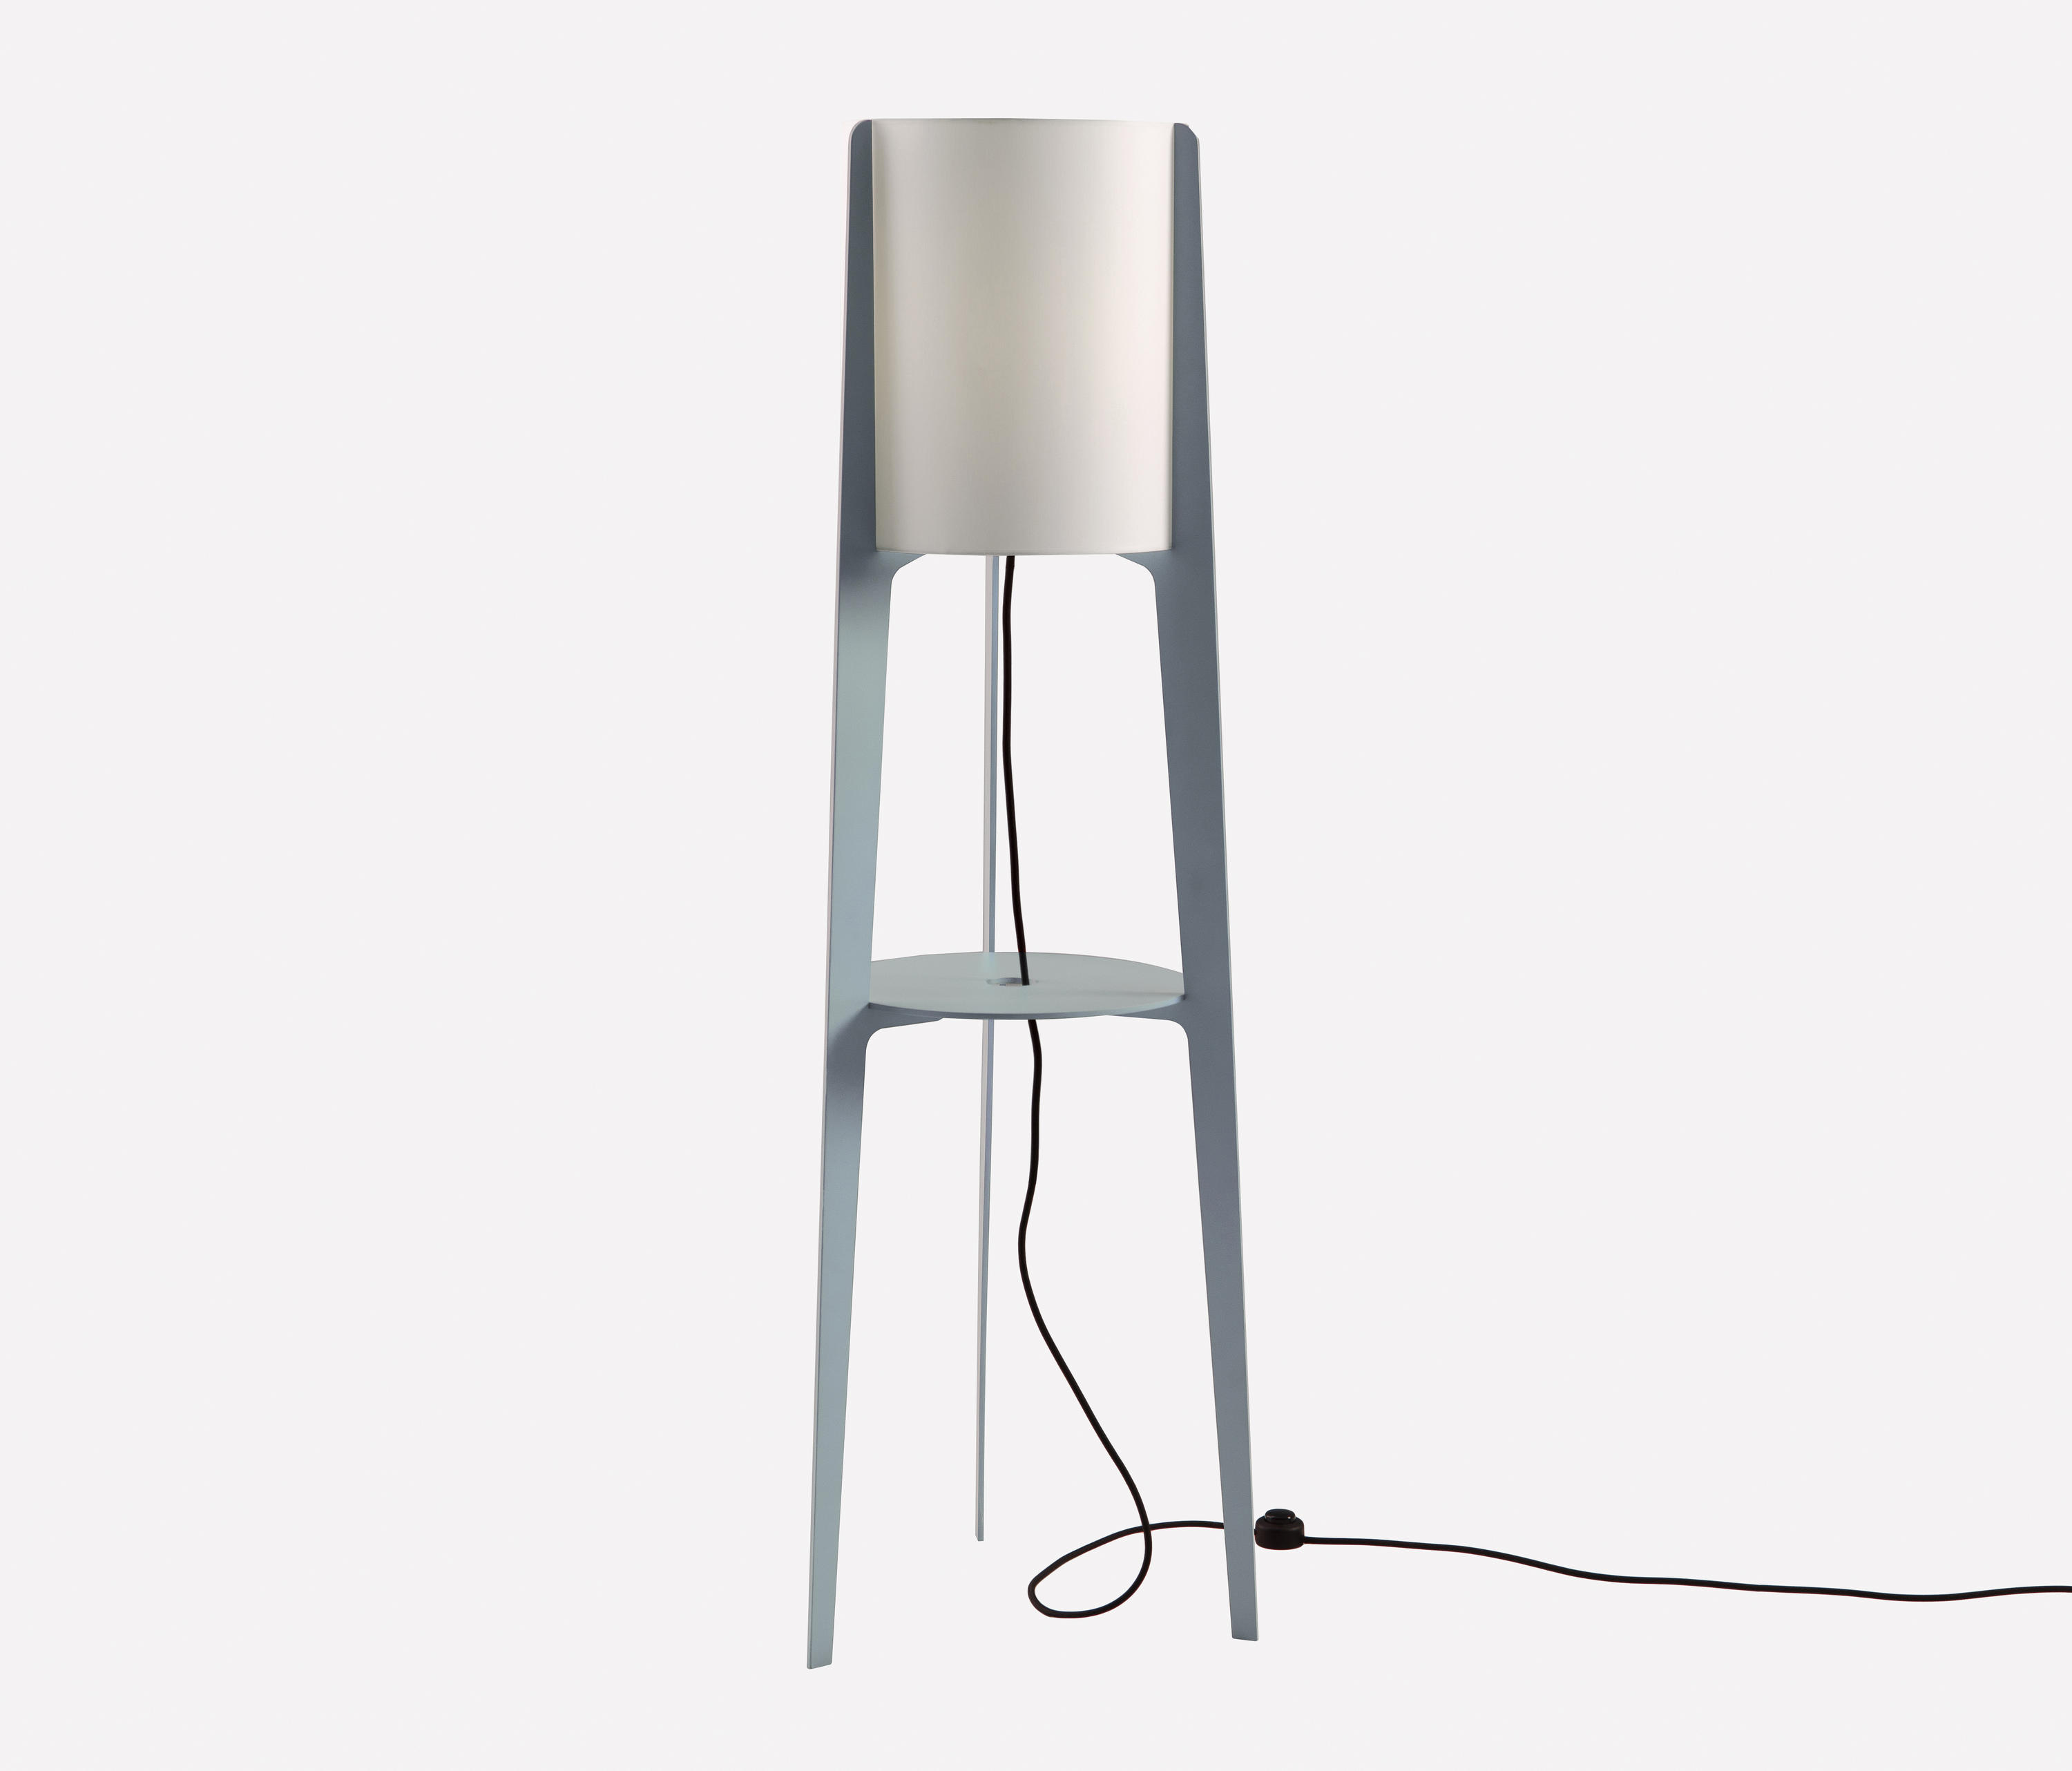 Tower floor lamp free standing lights from almerich architonic tower floor lamp by almerich free standing lights aloadofball Images